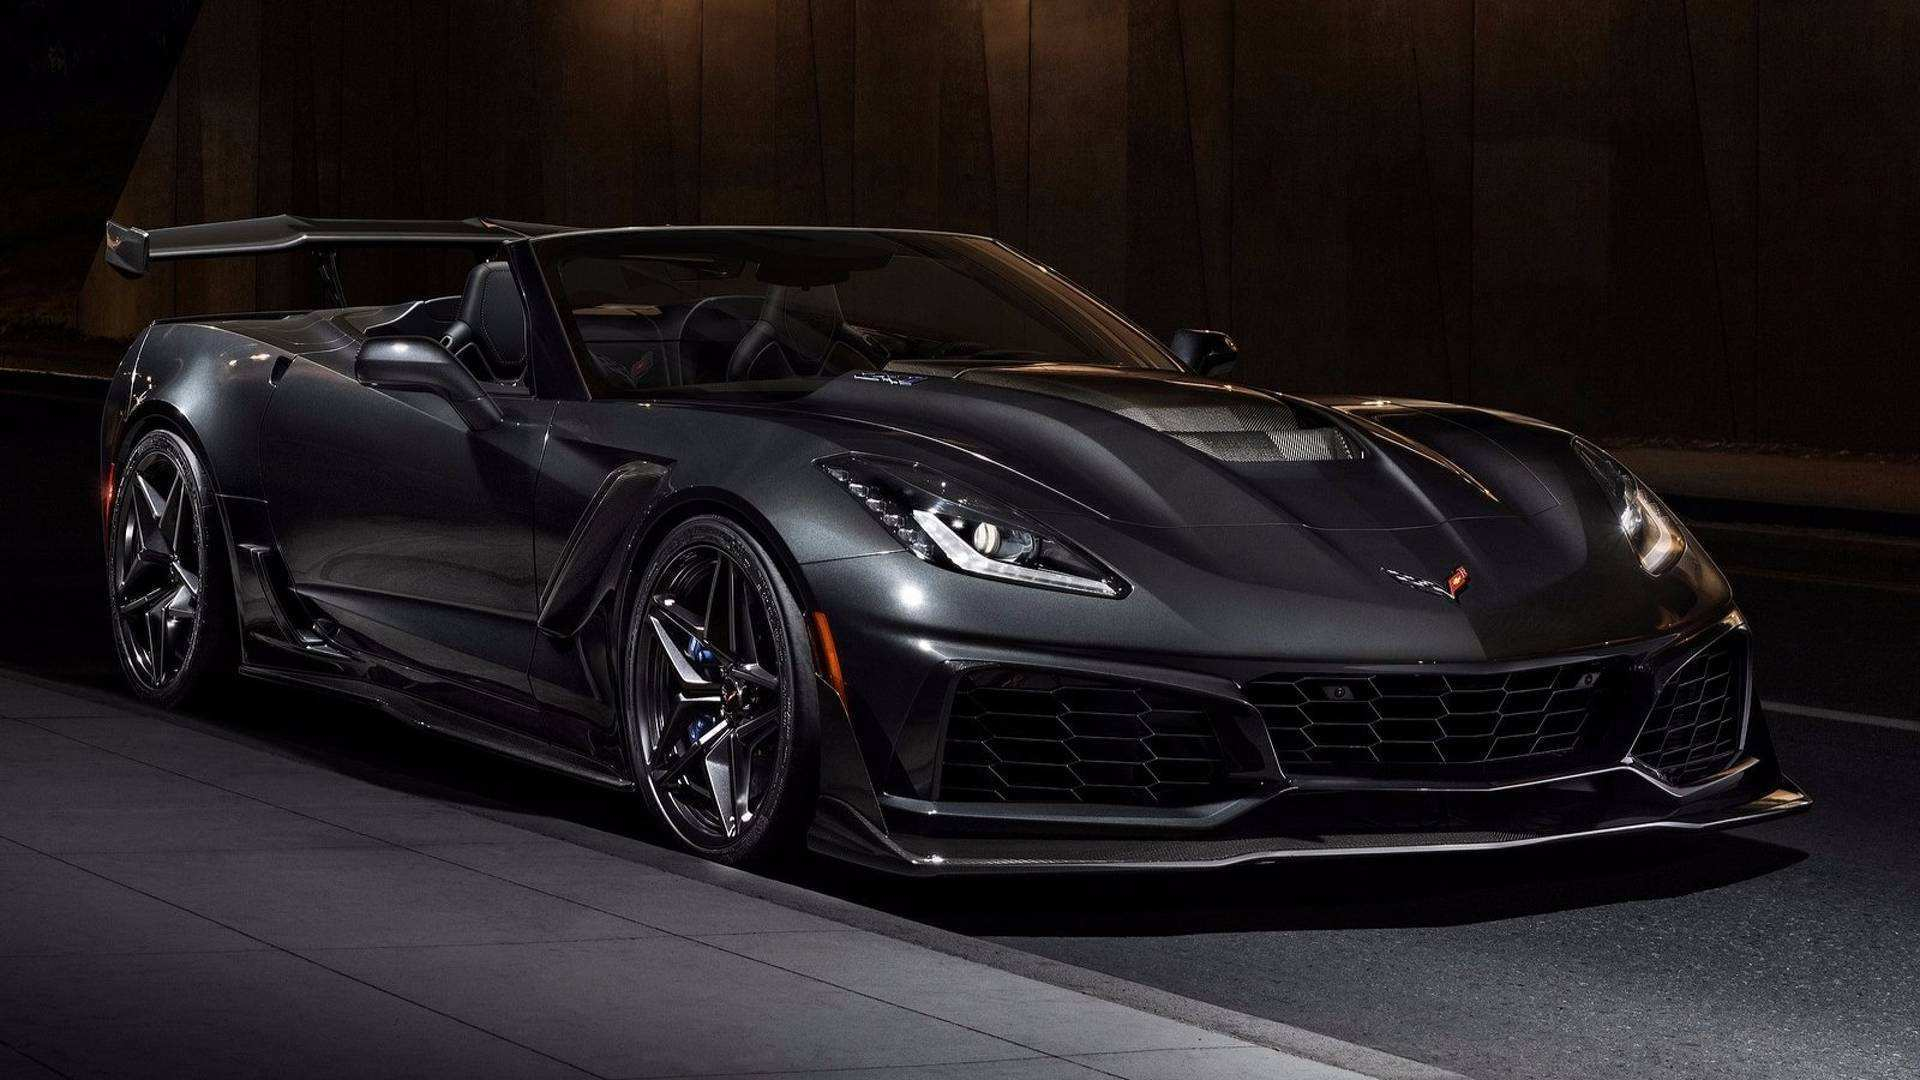 35 New 2019 Chevrolet Corvette Zr1 Price New Review